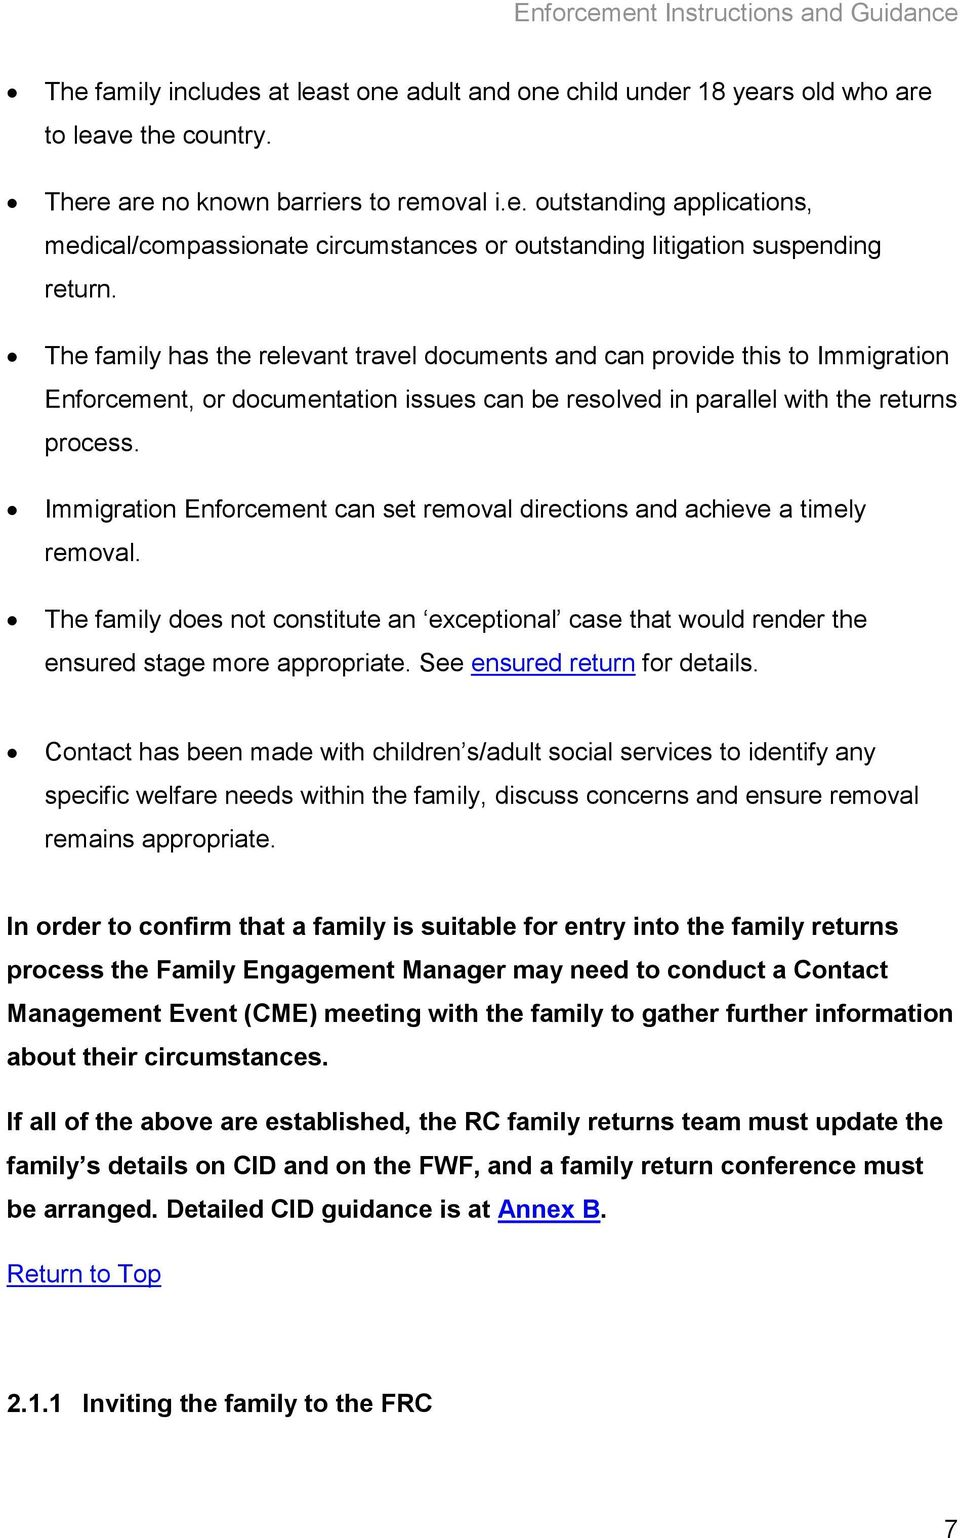 Immigration Enforcement can set removal directions and achieve a timely removal. The family does not constitute an exceptional case that would render the ensured stage more appropriate.